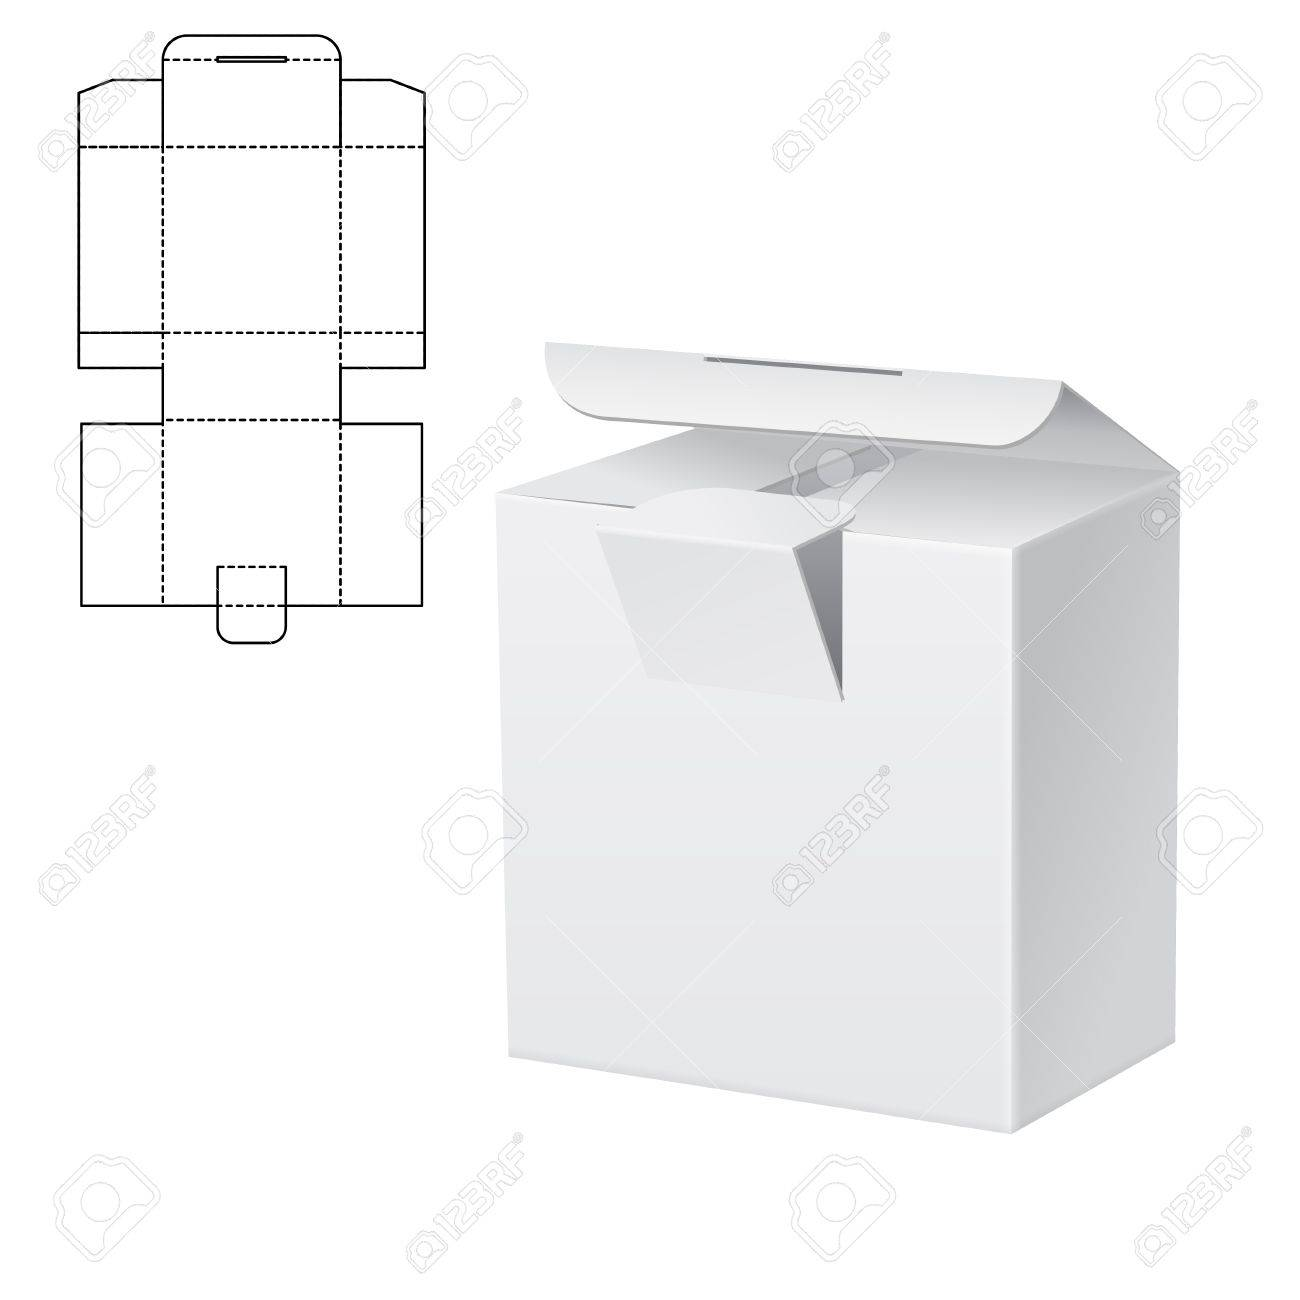 Illustration of Diecut Craft Box for Design, Website, Background. Retail Folding package Template. Fold pack with dieline for your brand on it - 64133854